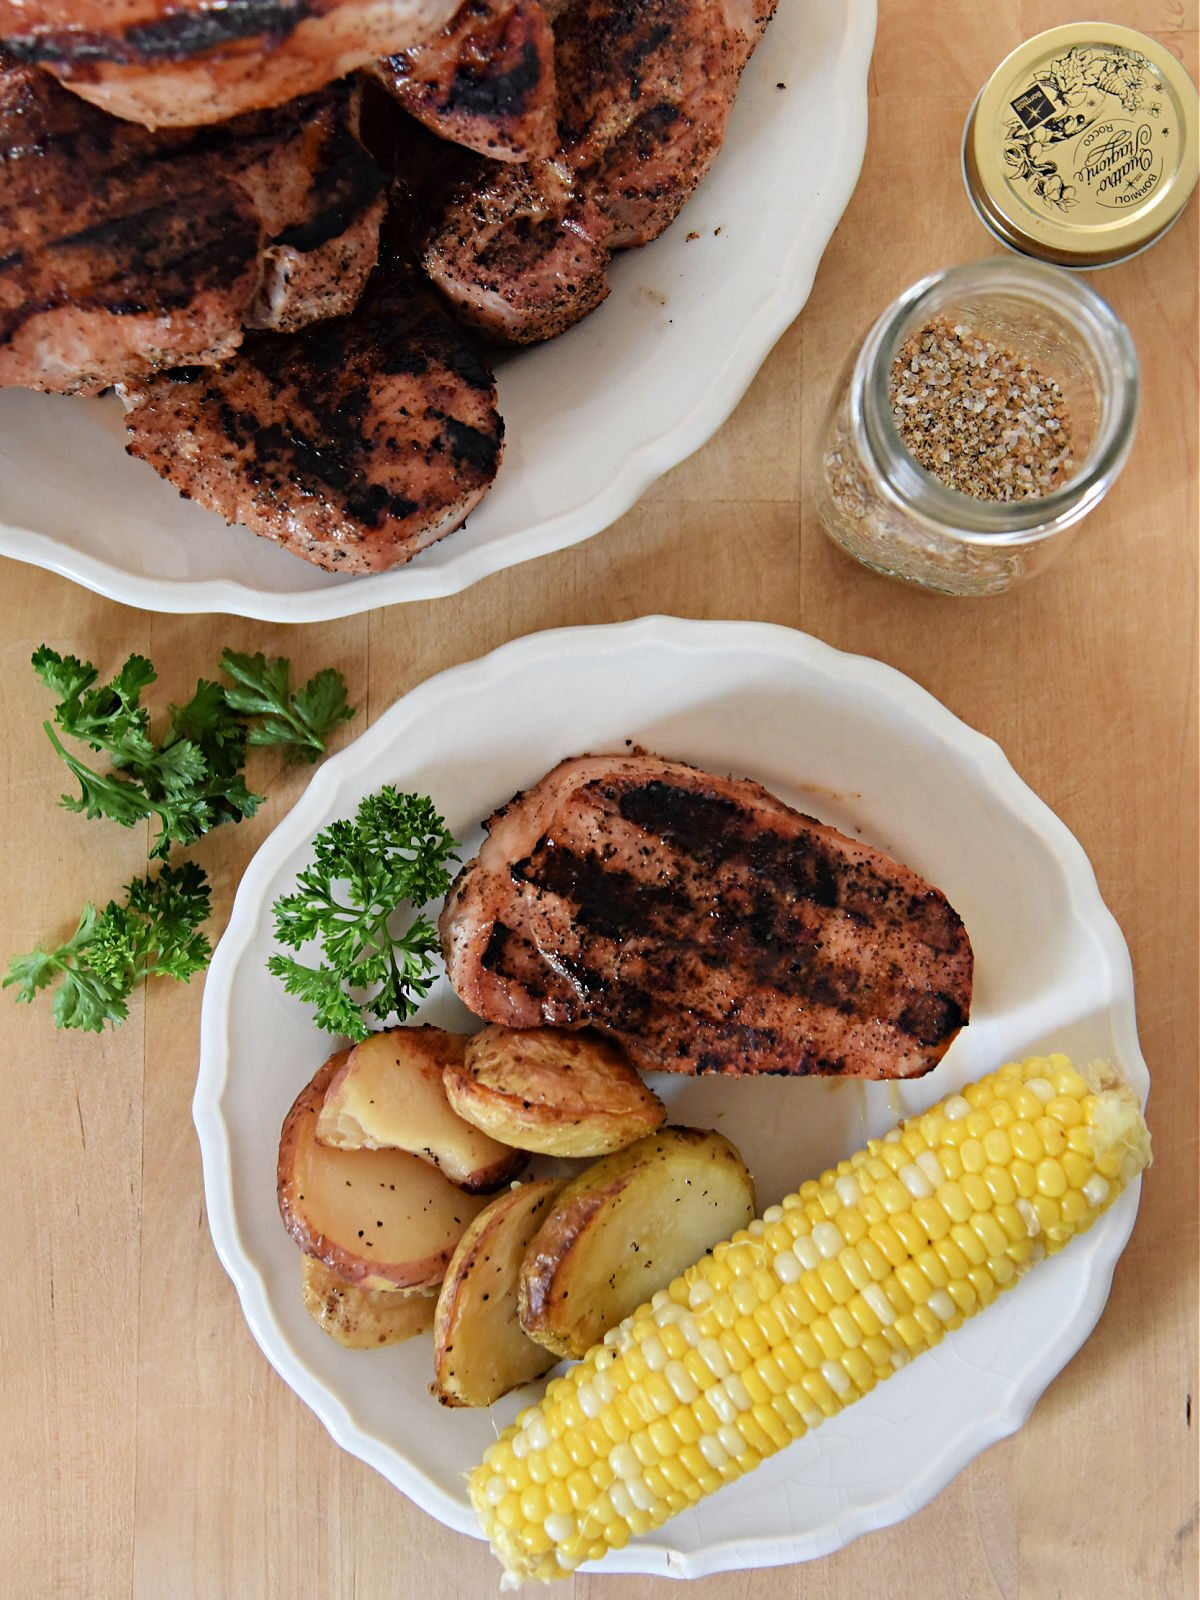 Grilled pork chop, potatoes, and corn on a white plate.